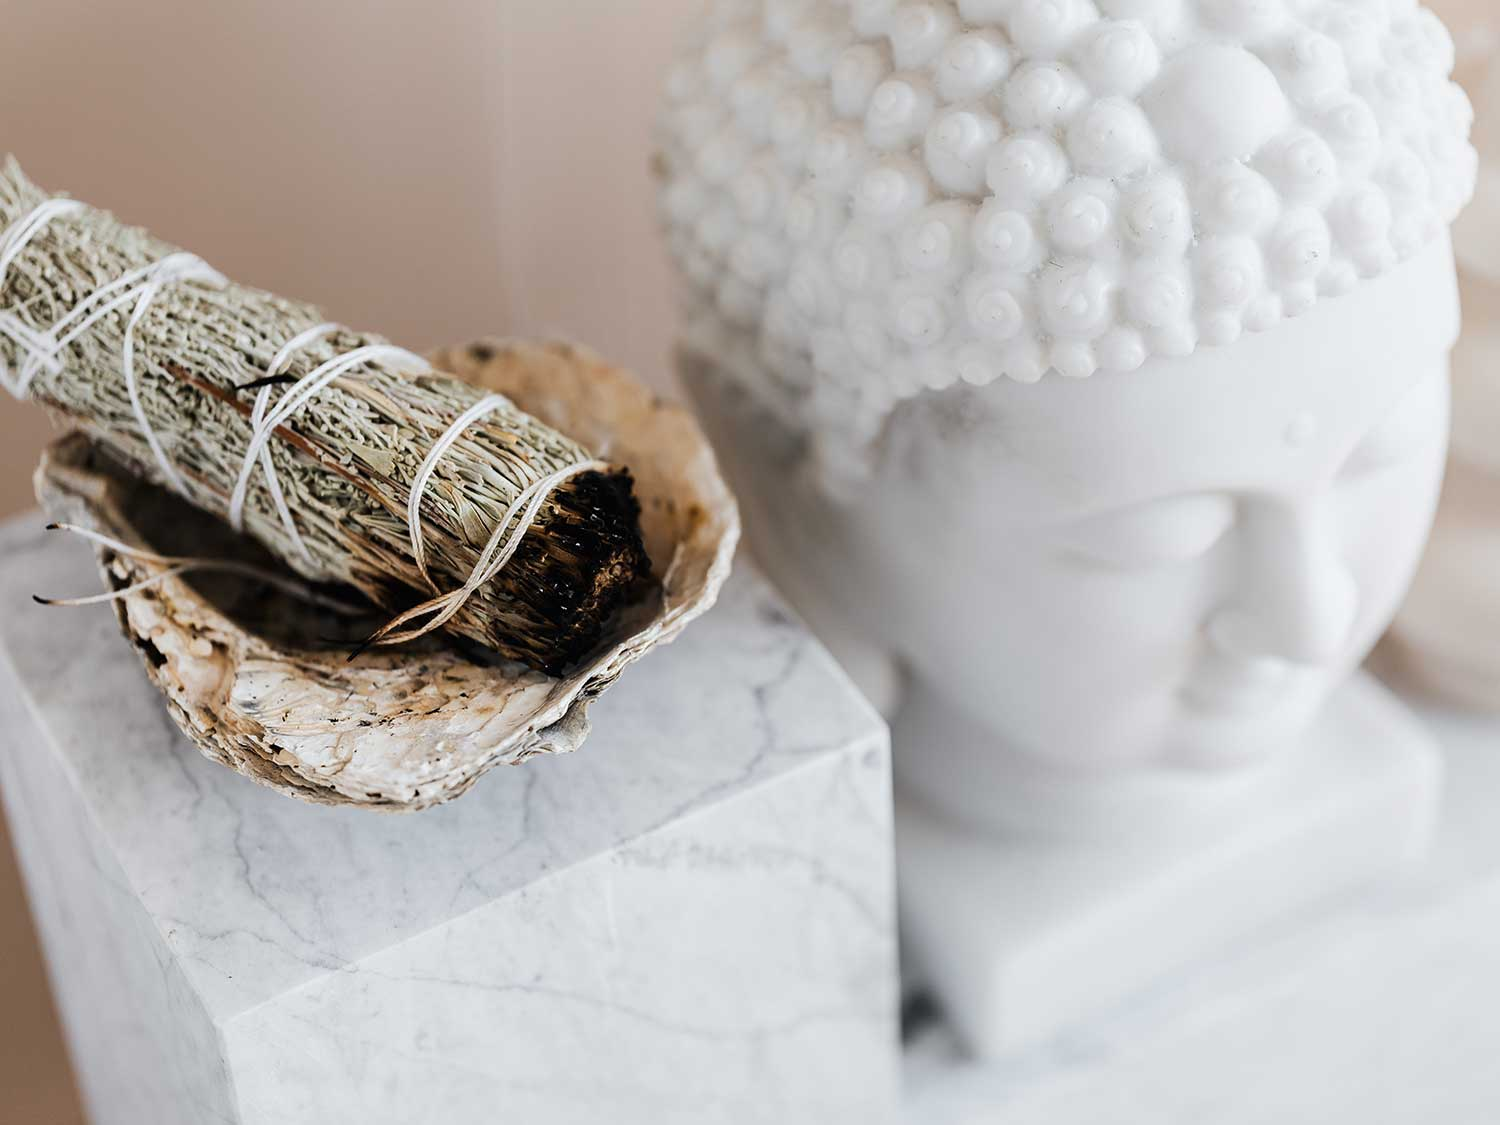 Burning sage to cleanse space.